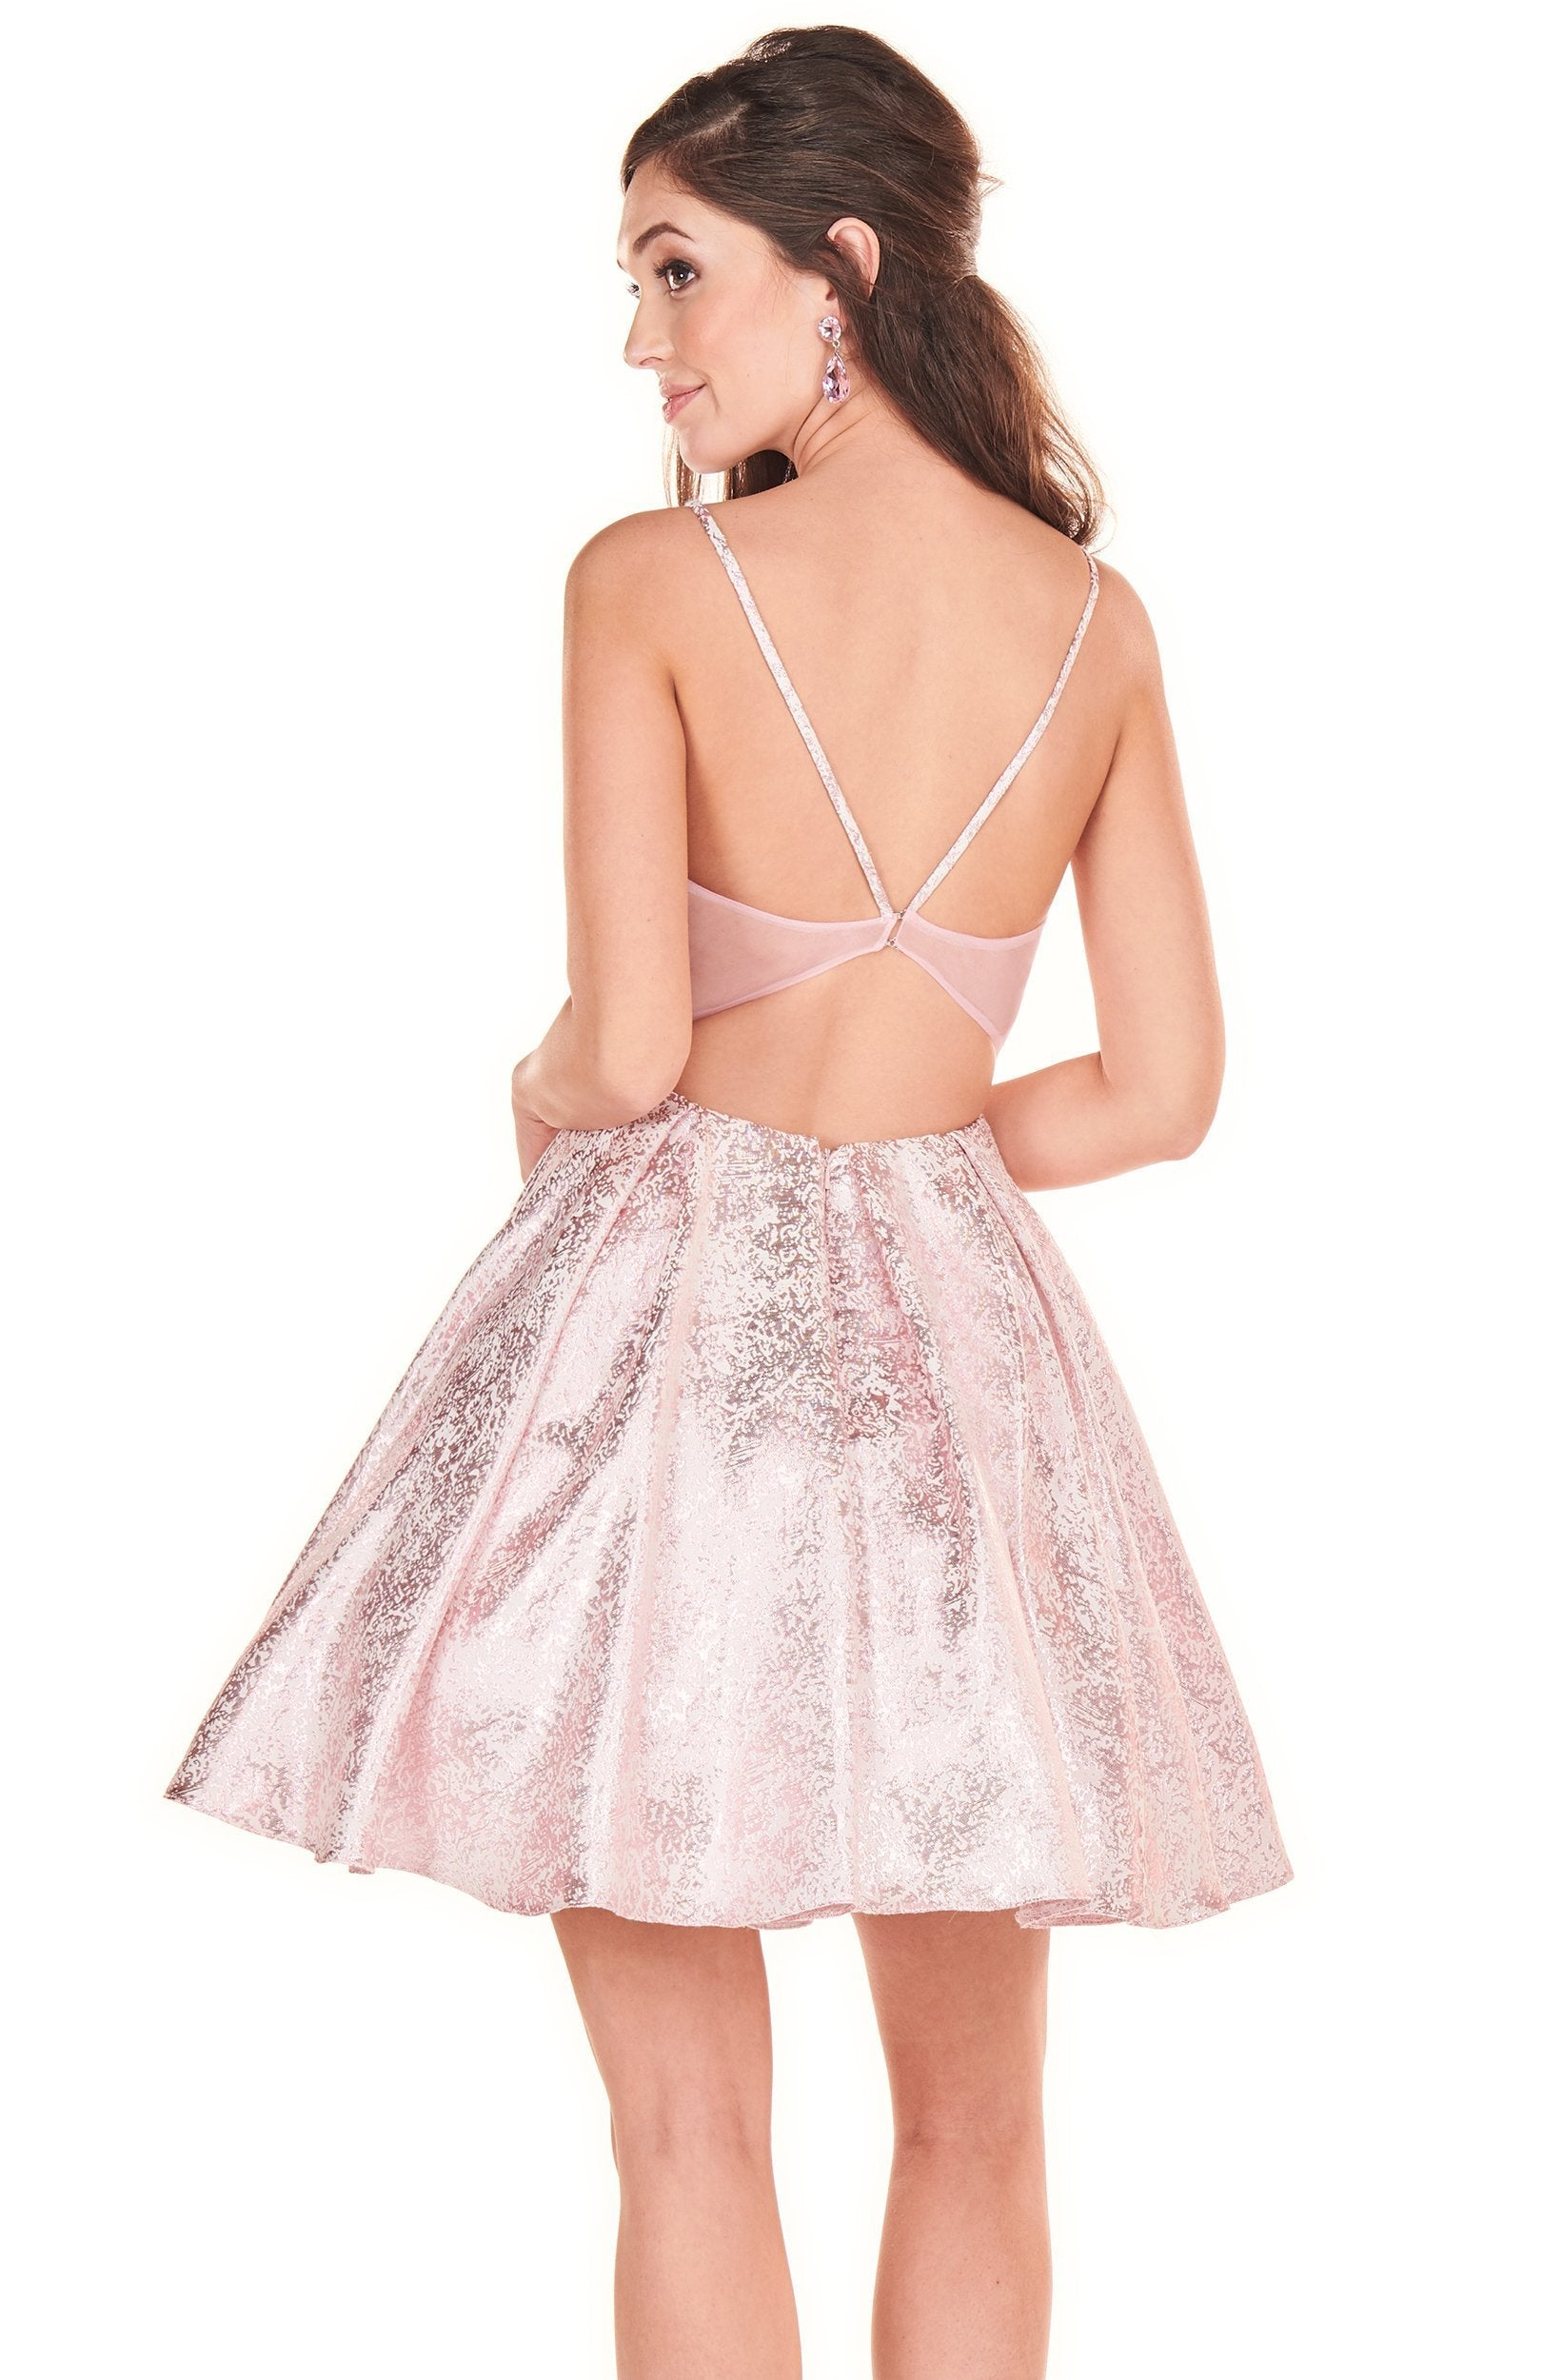 Rachel Allan Shorts - 4070 Sweetheart Ruffle A-Line Short Dress In Pink